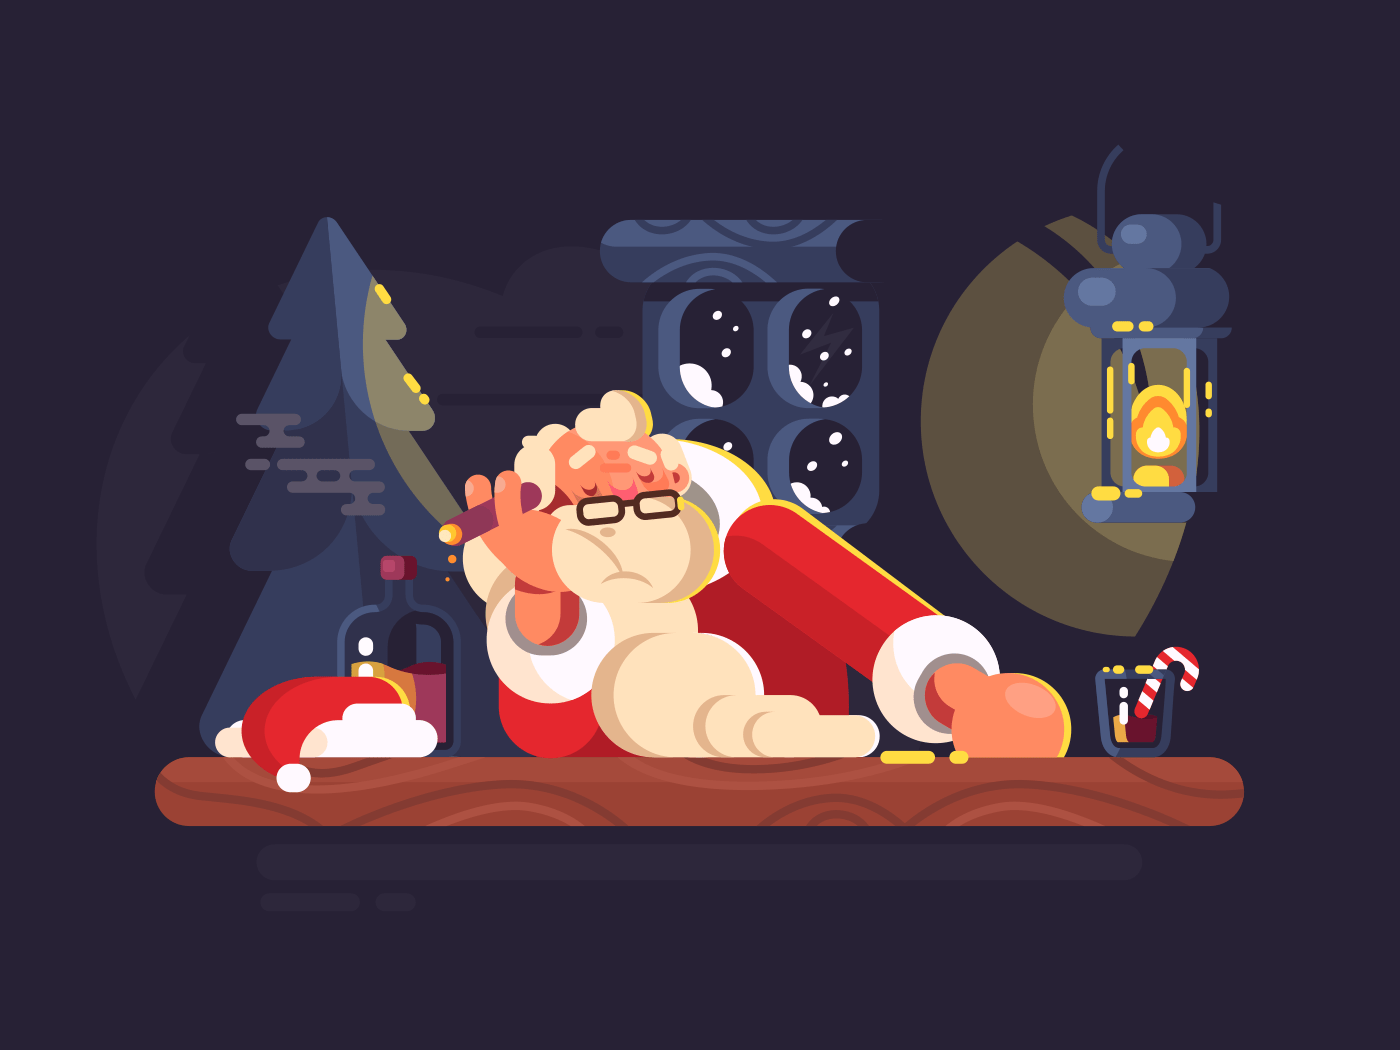 Bad Santa Claus illustration